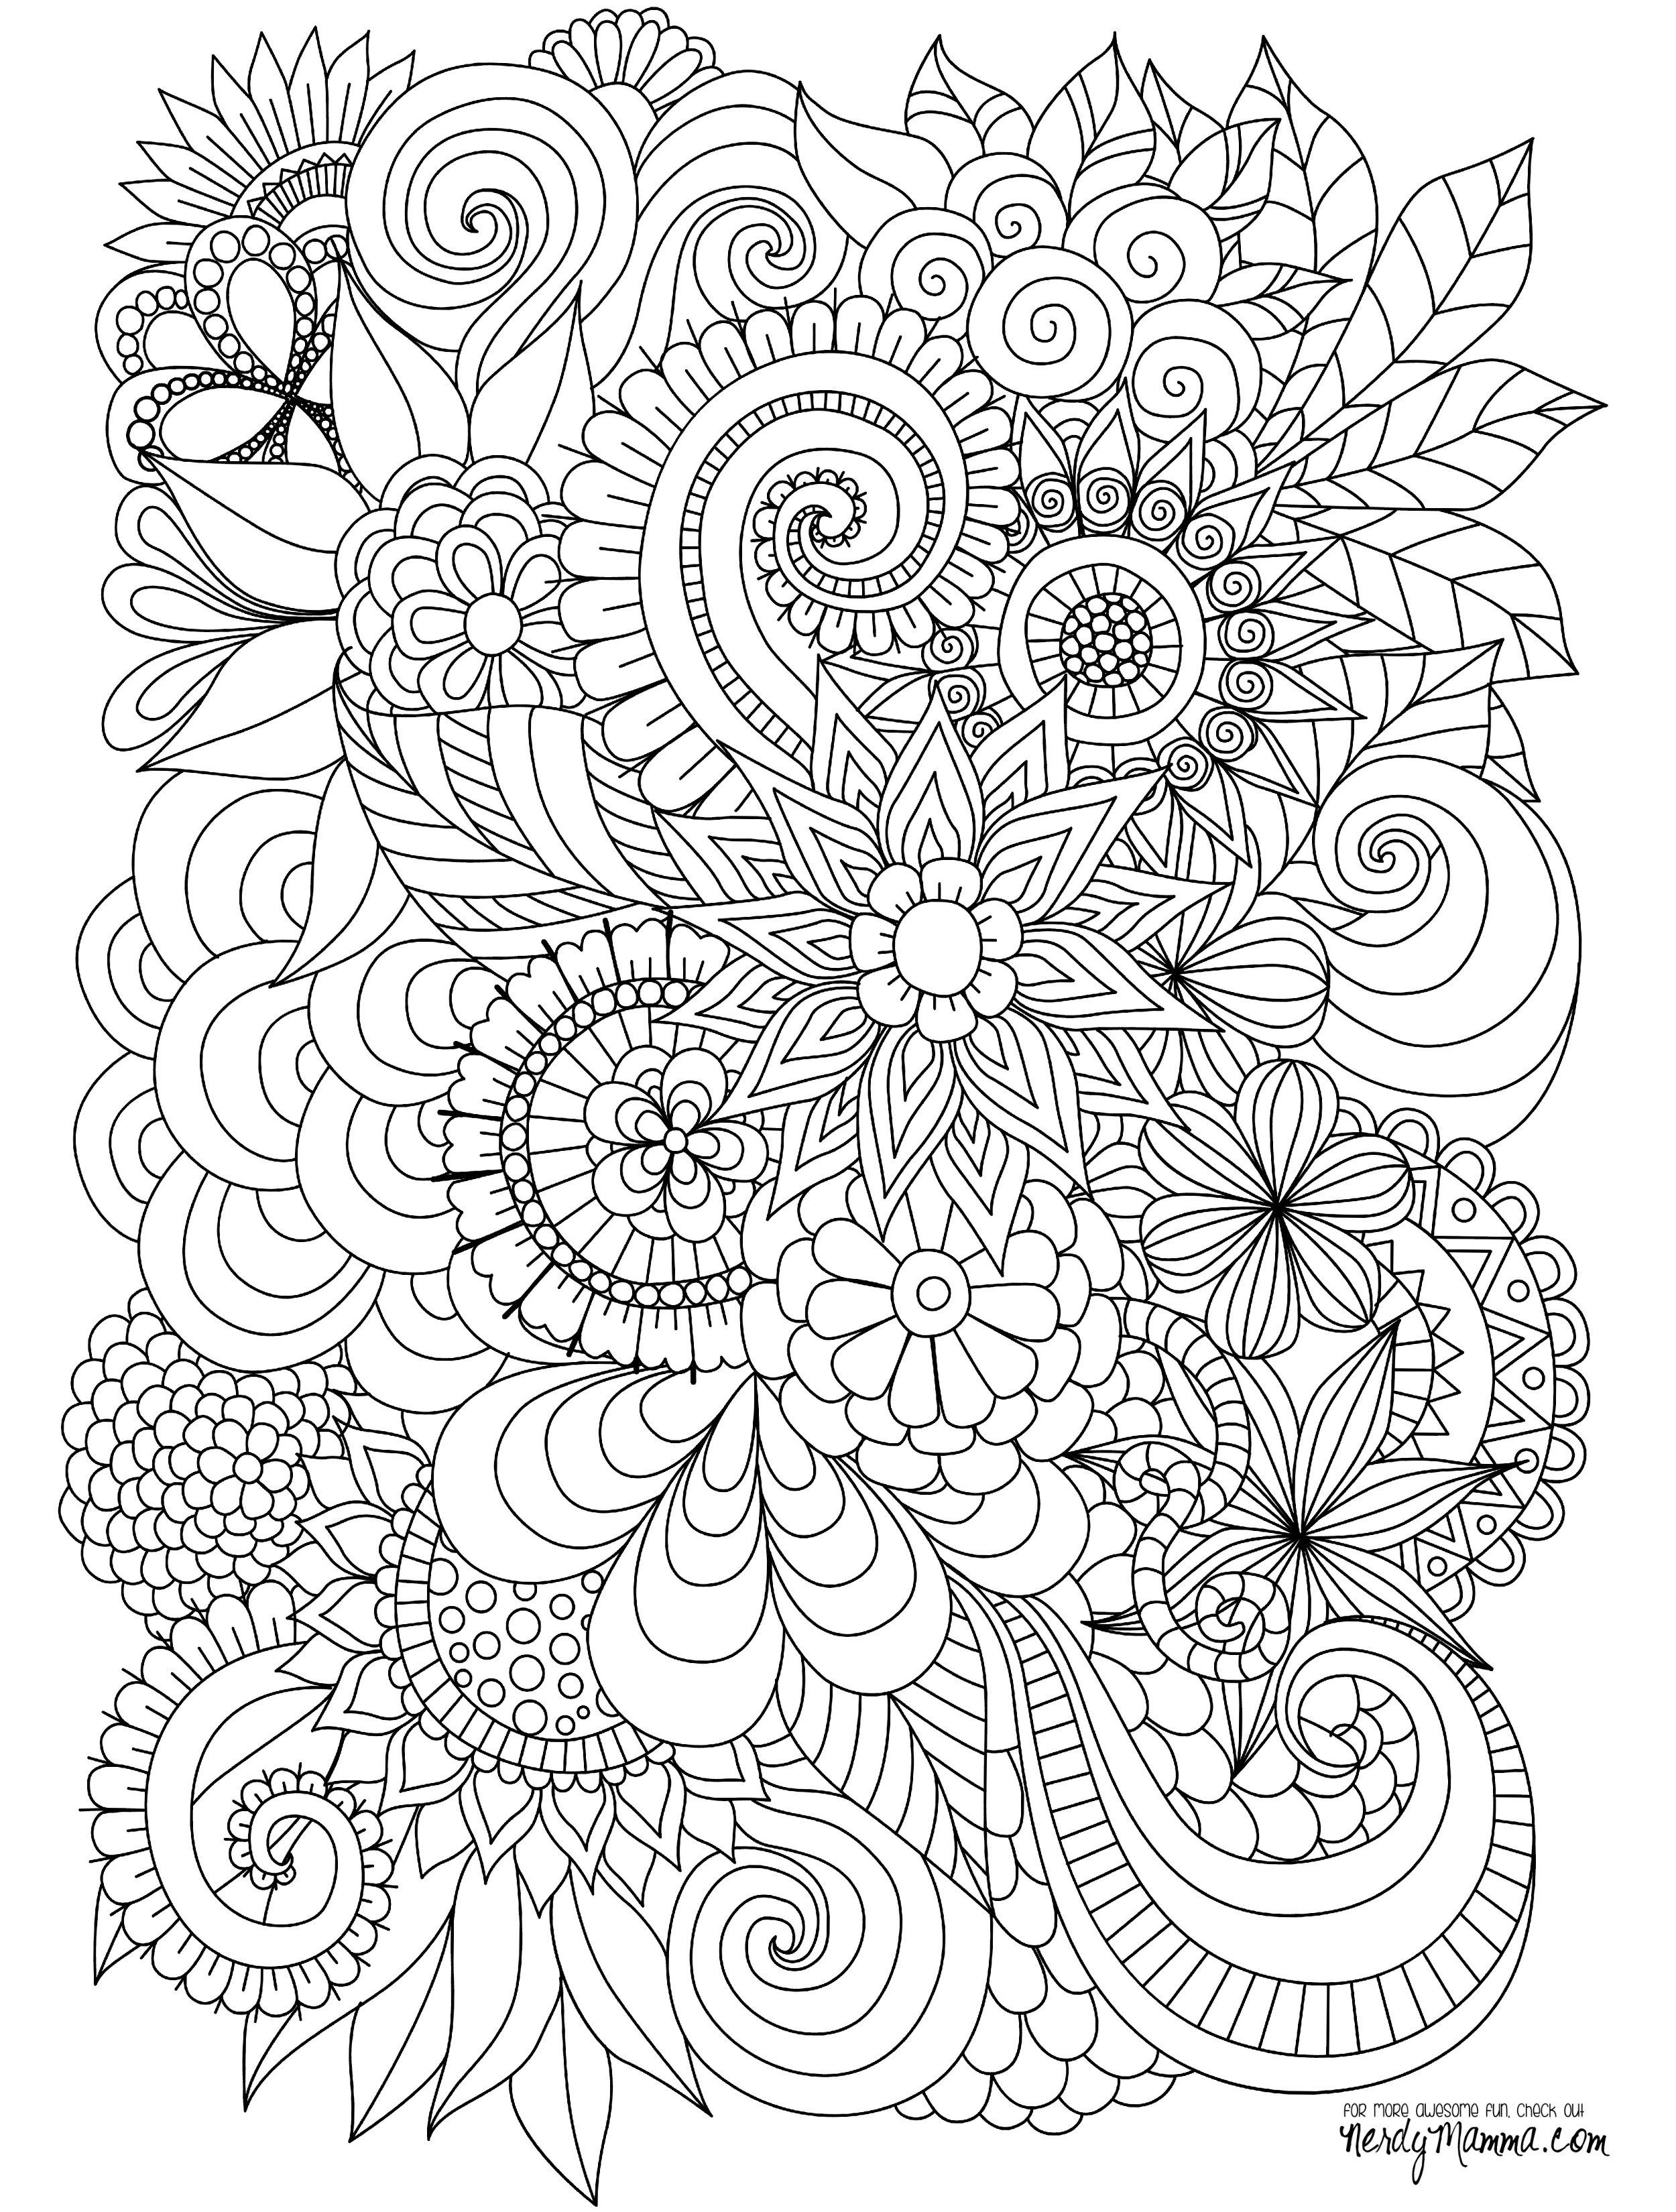 Grayscale Coloring Pages  Download 8s - To print for your project